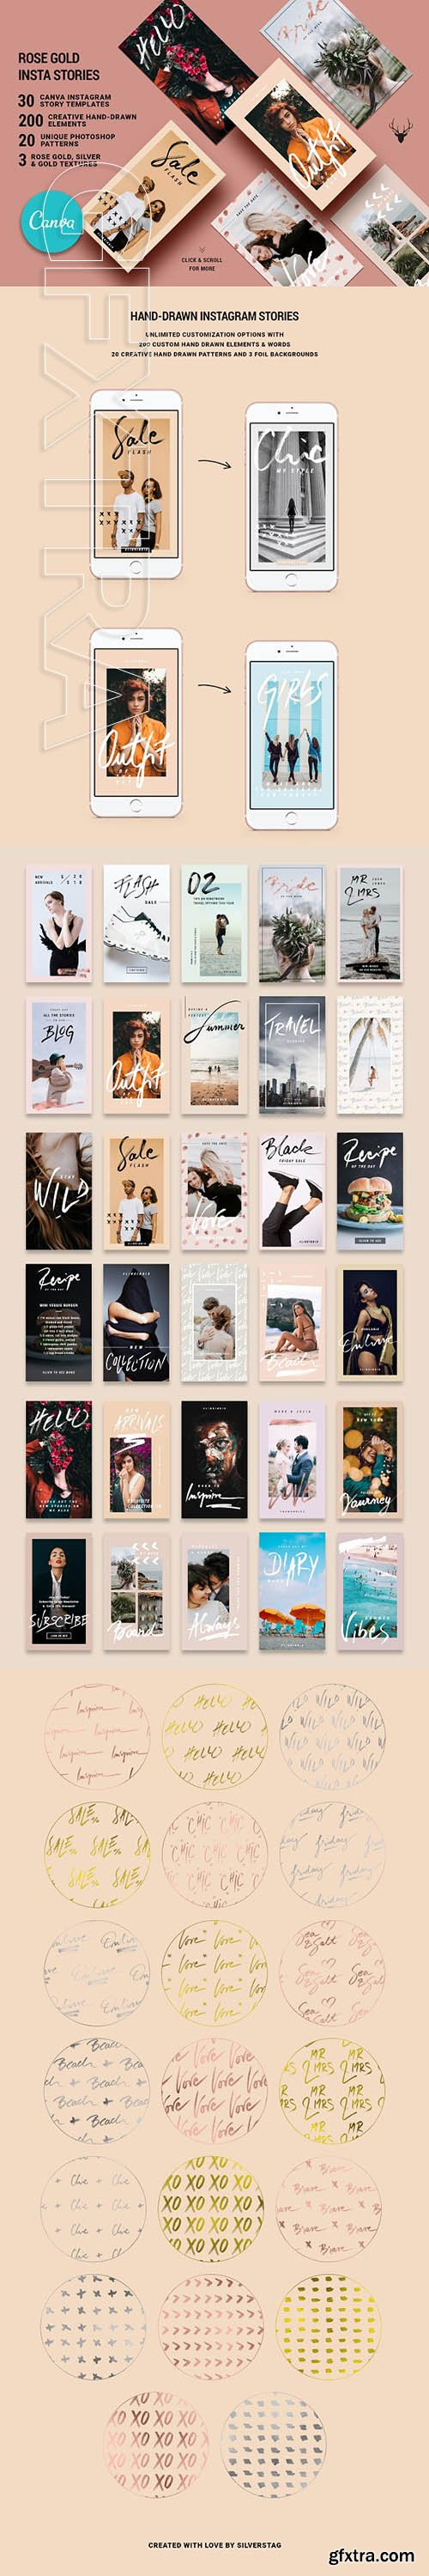 CANVA Rose Gold Instagram Stories